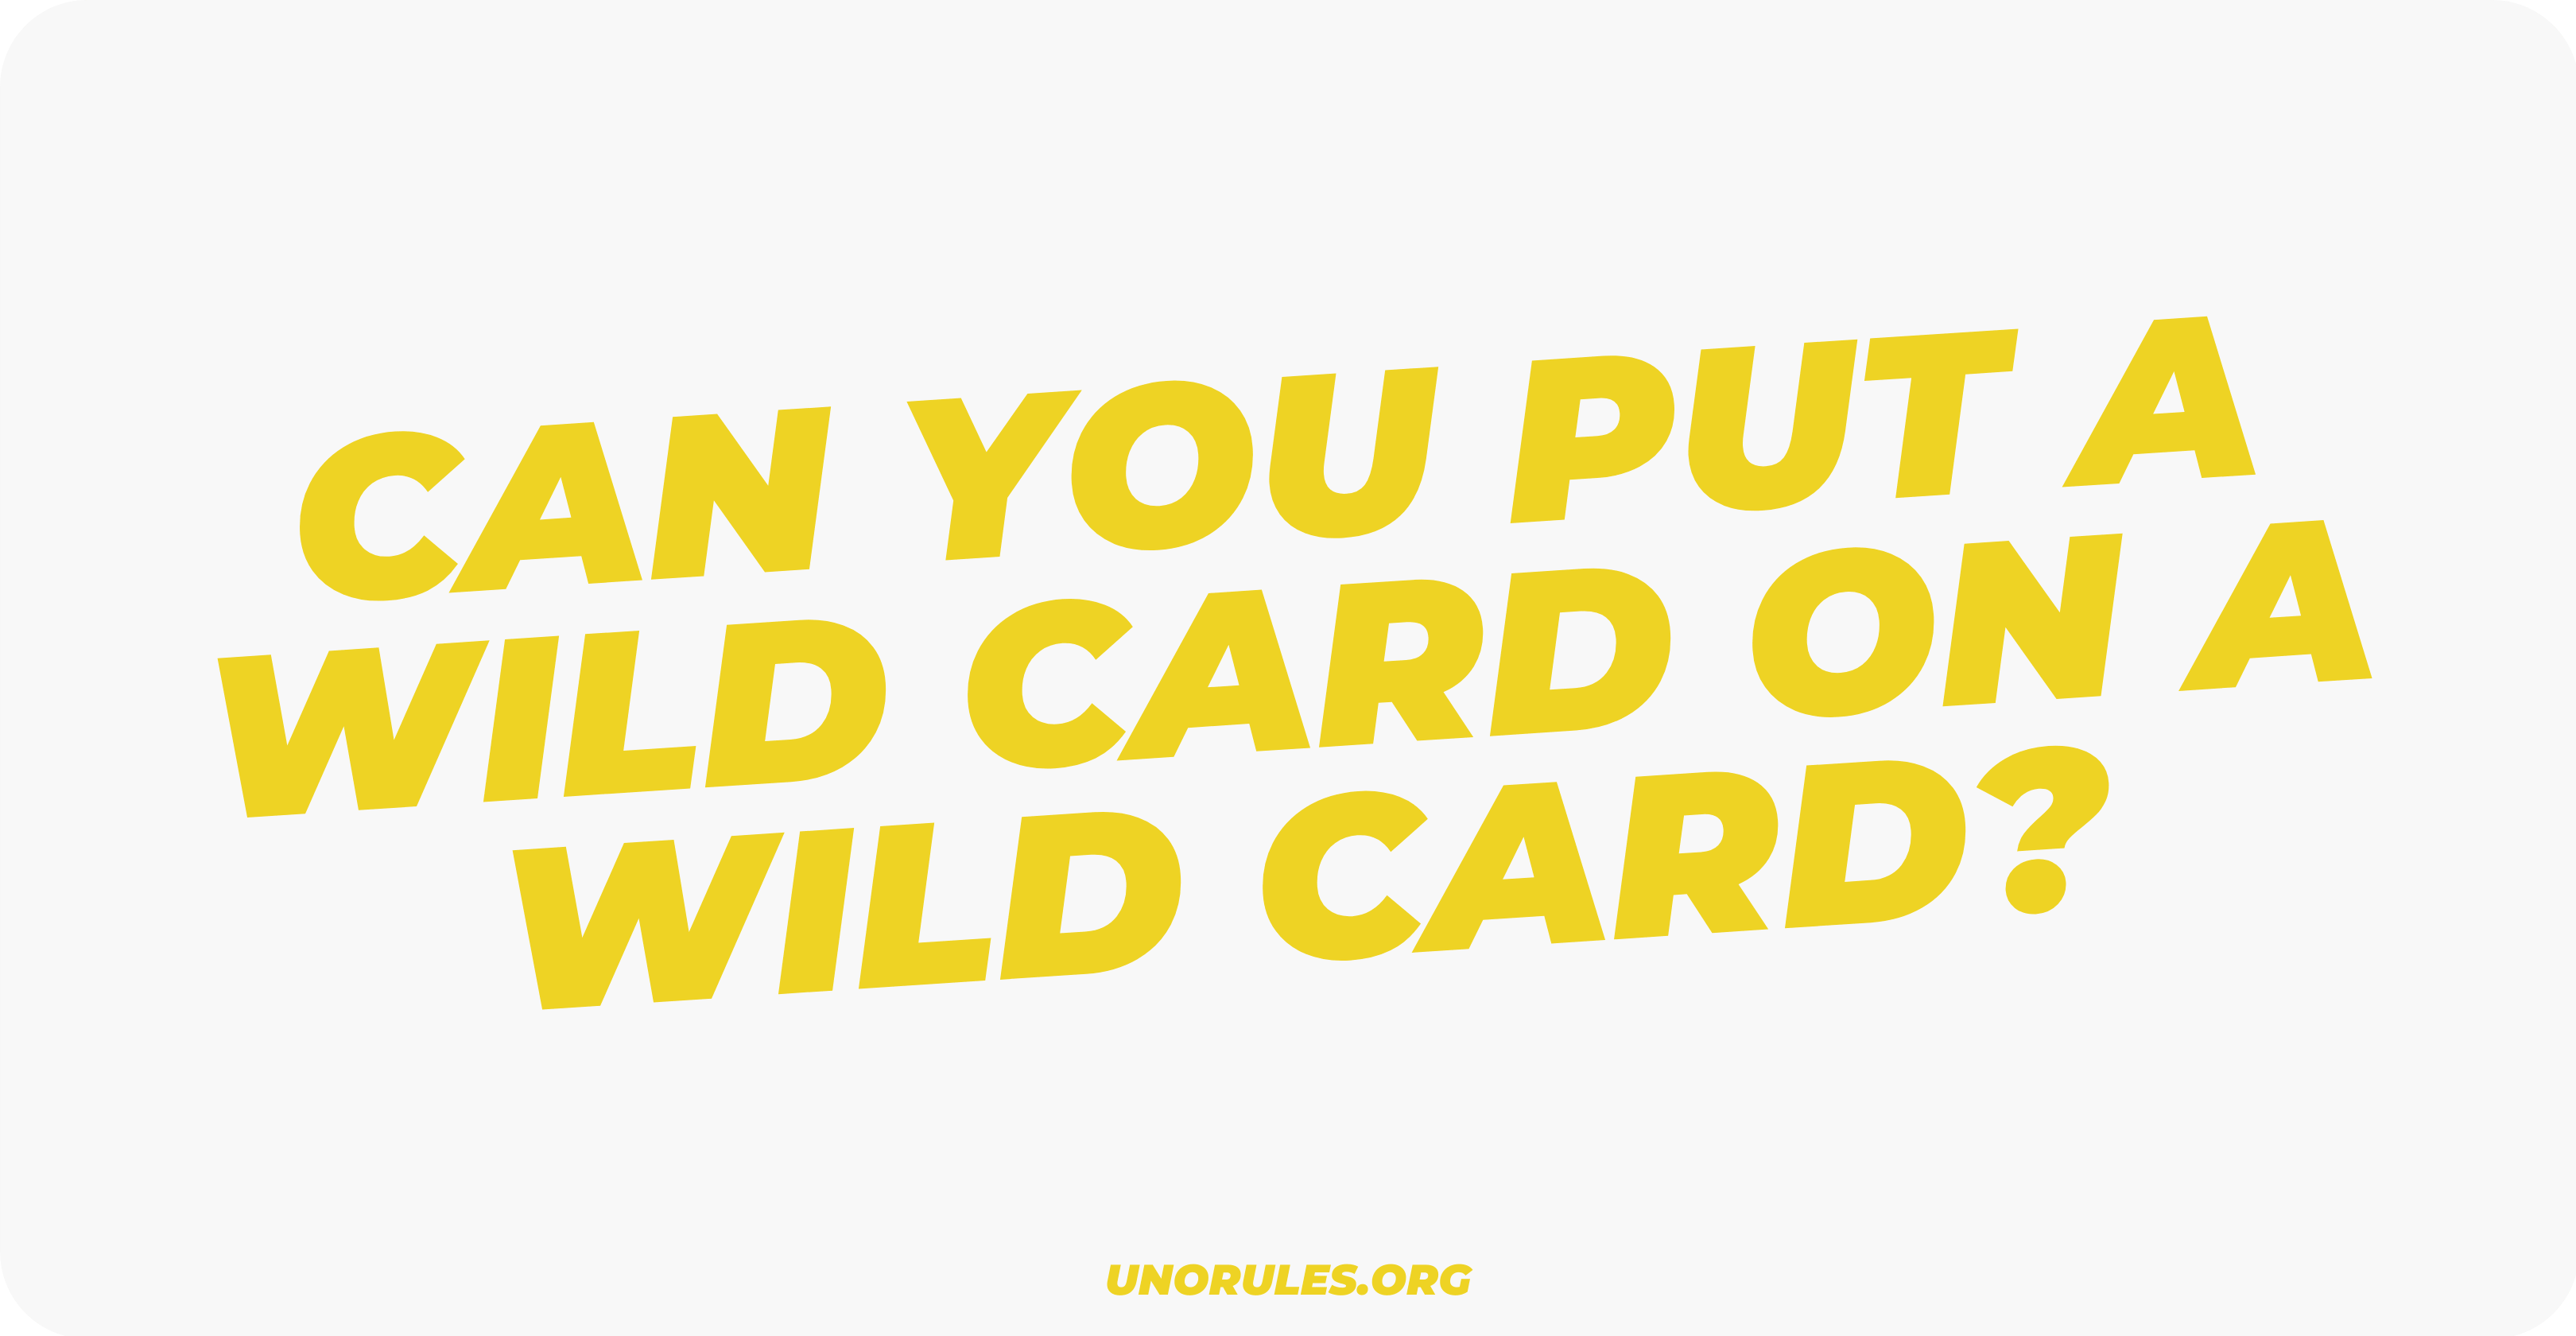 Can you put a wild card on a wild card